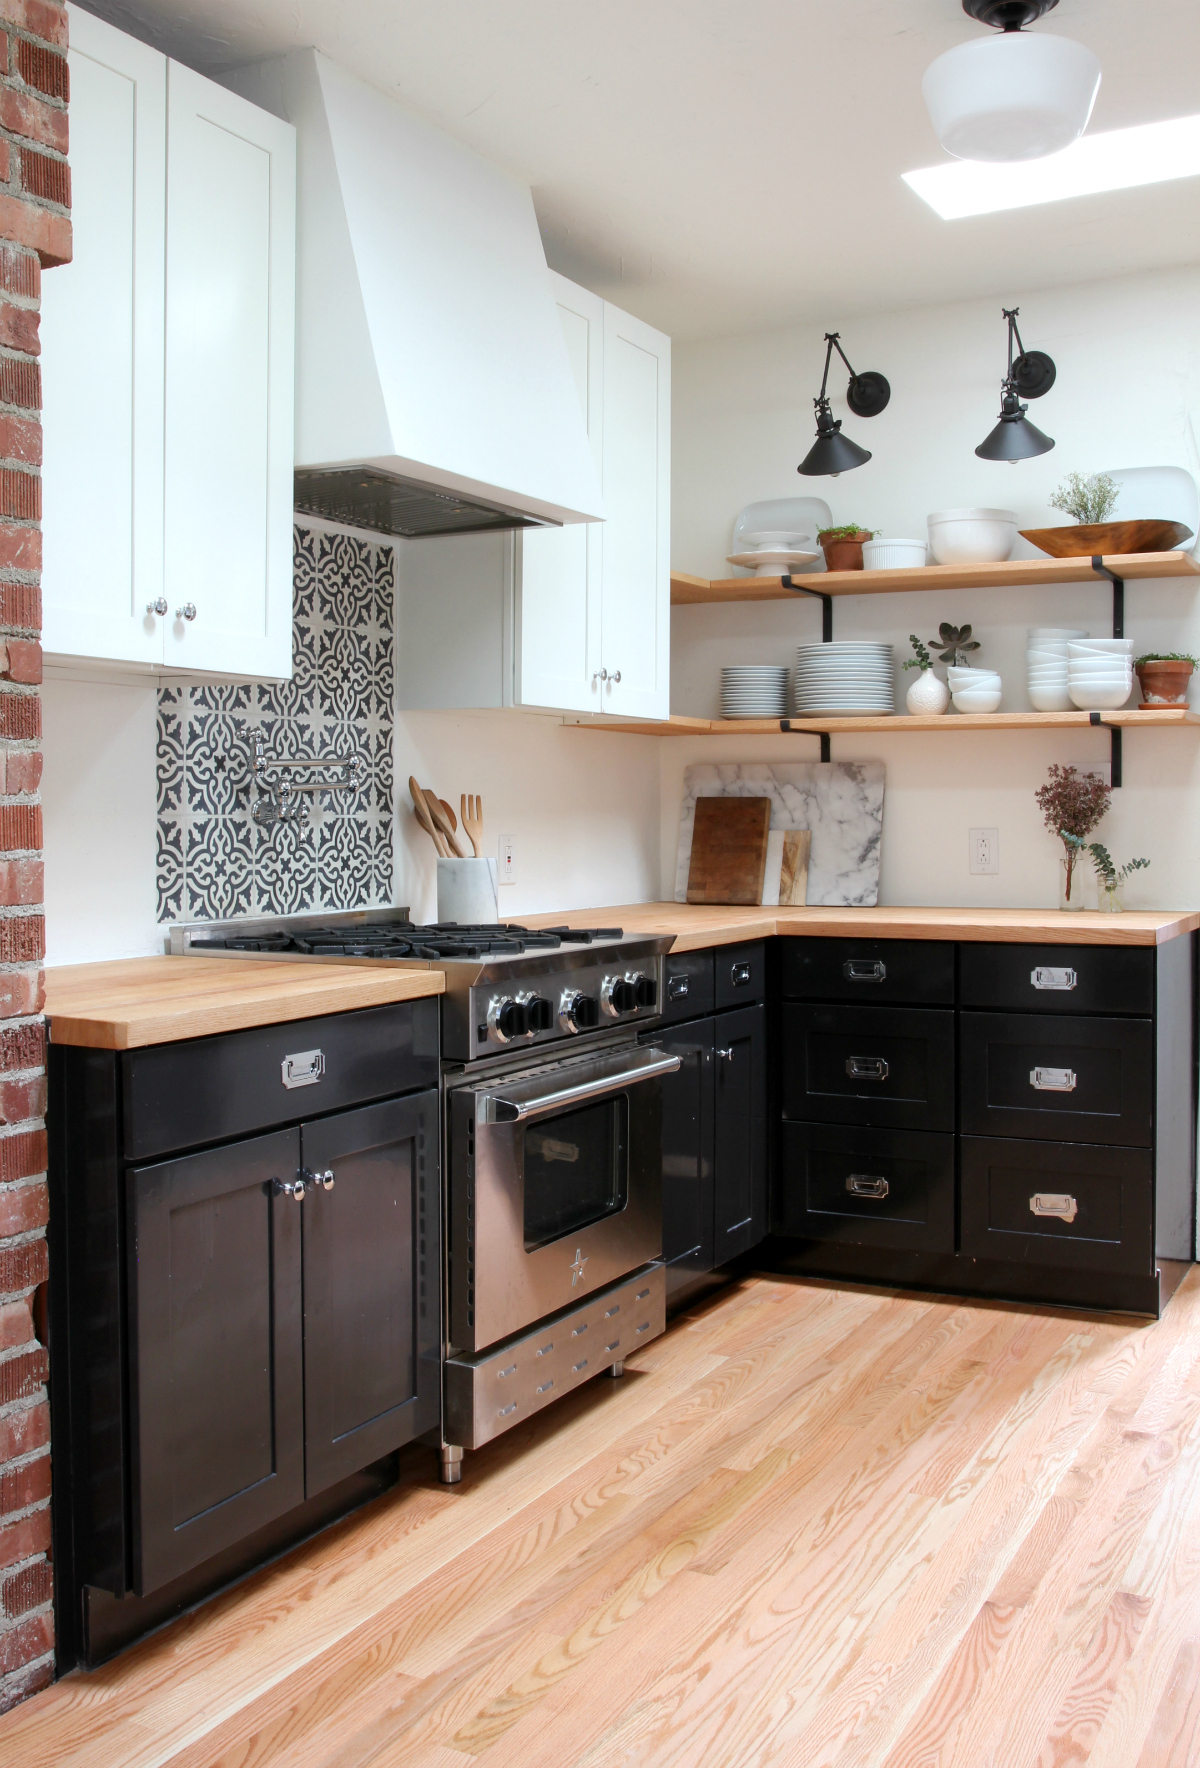 The Grit and Polish - Dexter Kitchen Remodel north